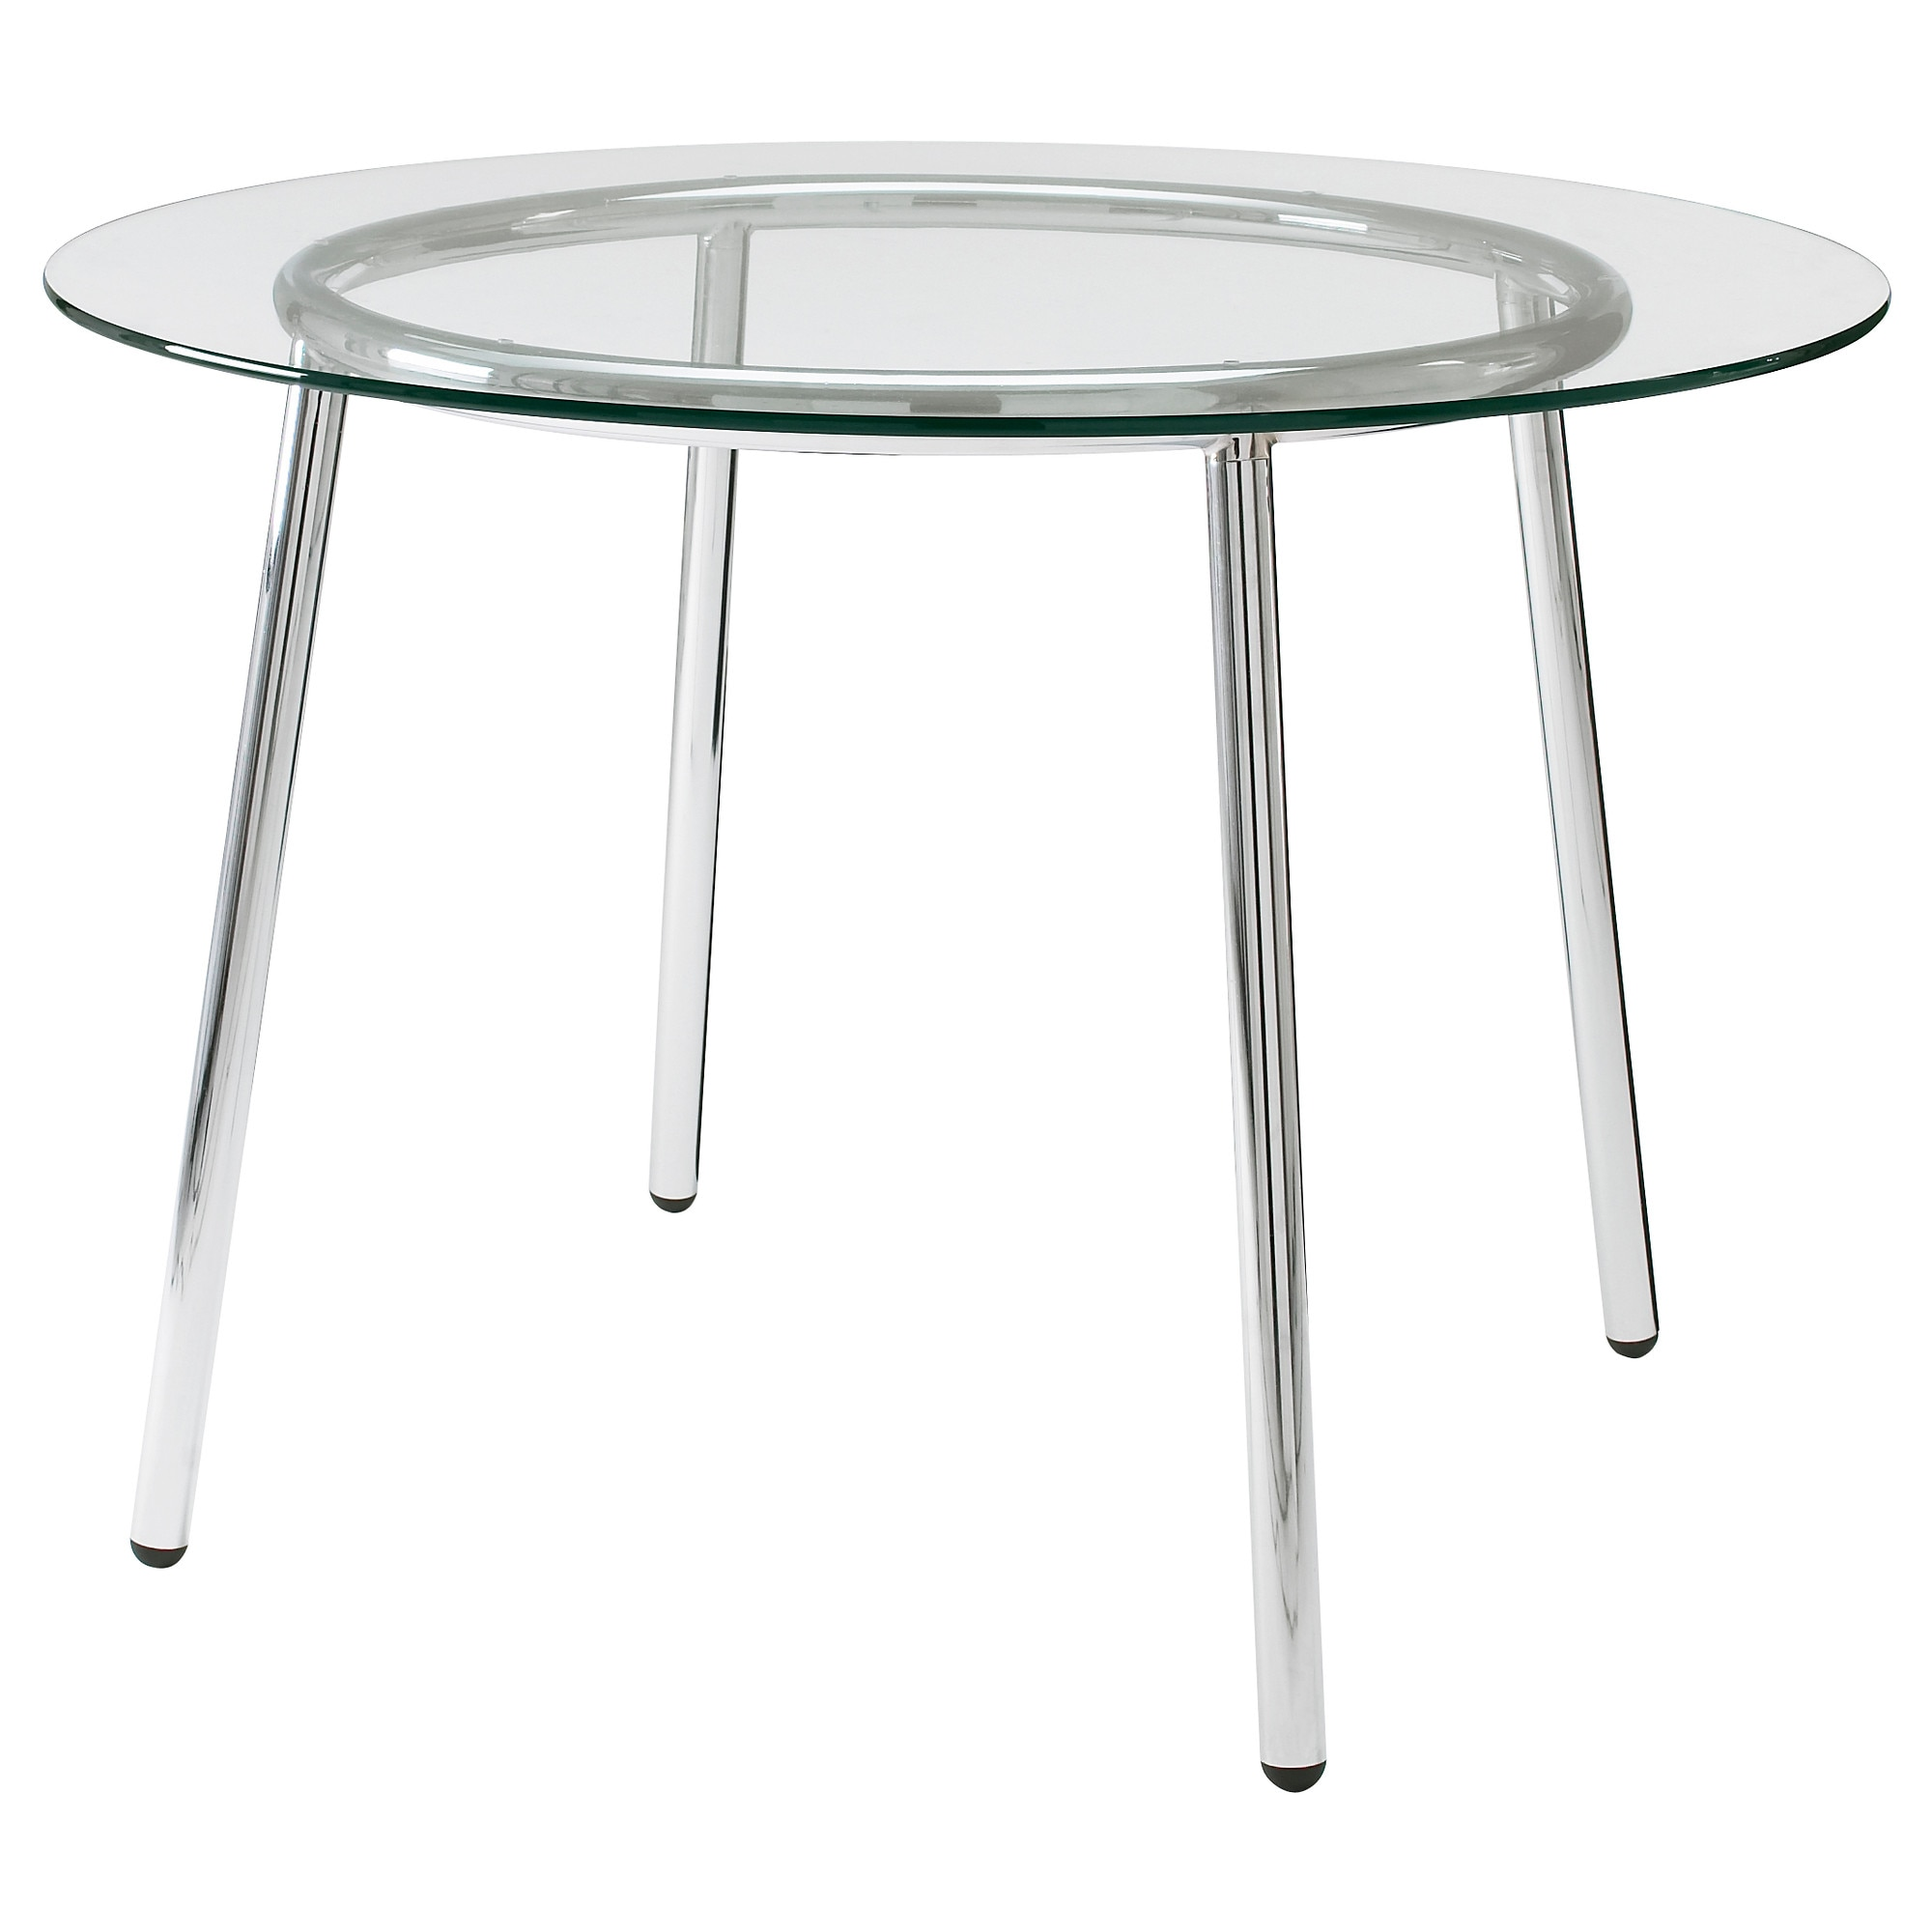 Round glass table tops - Round Glass Table Tops 43